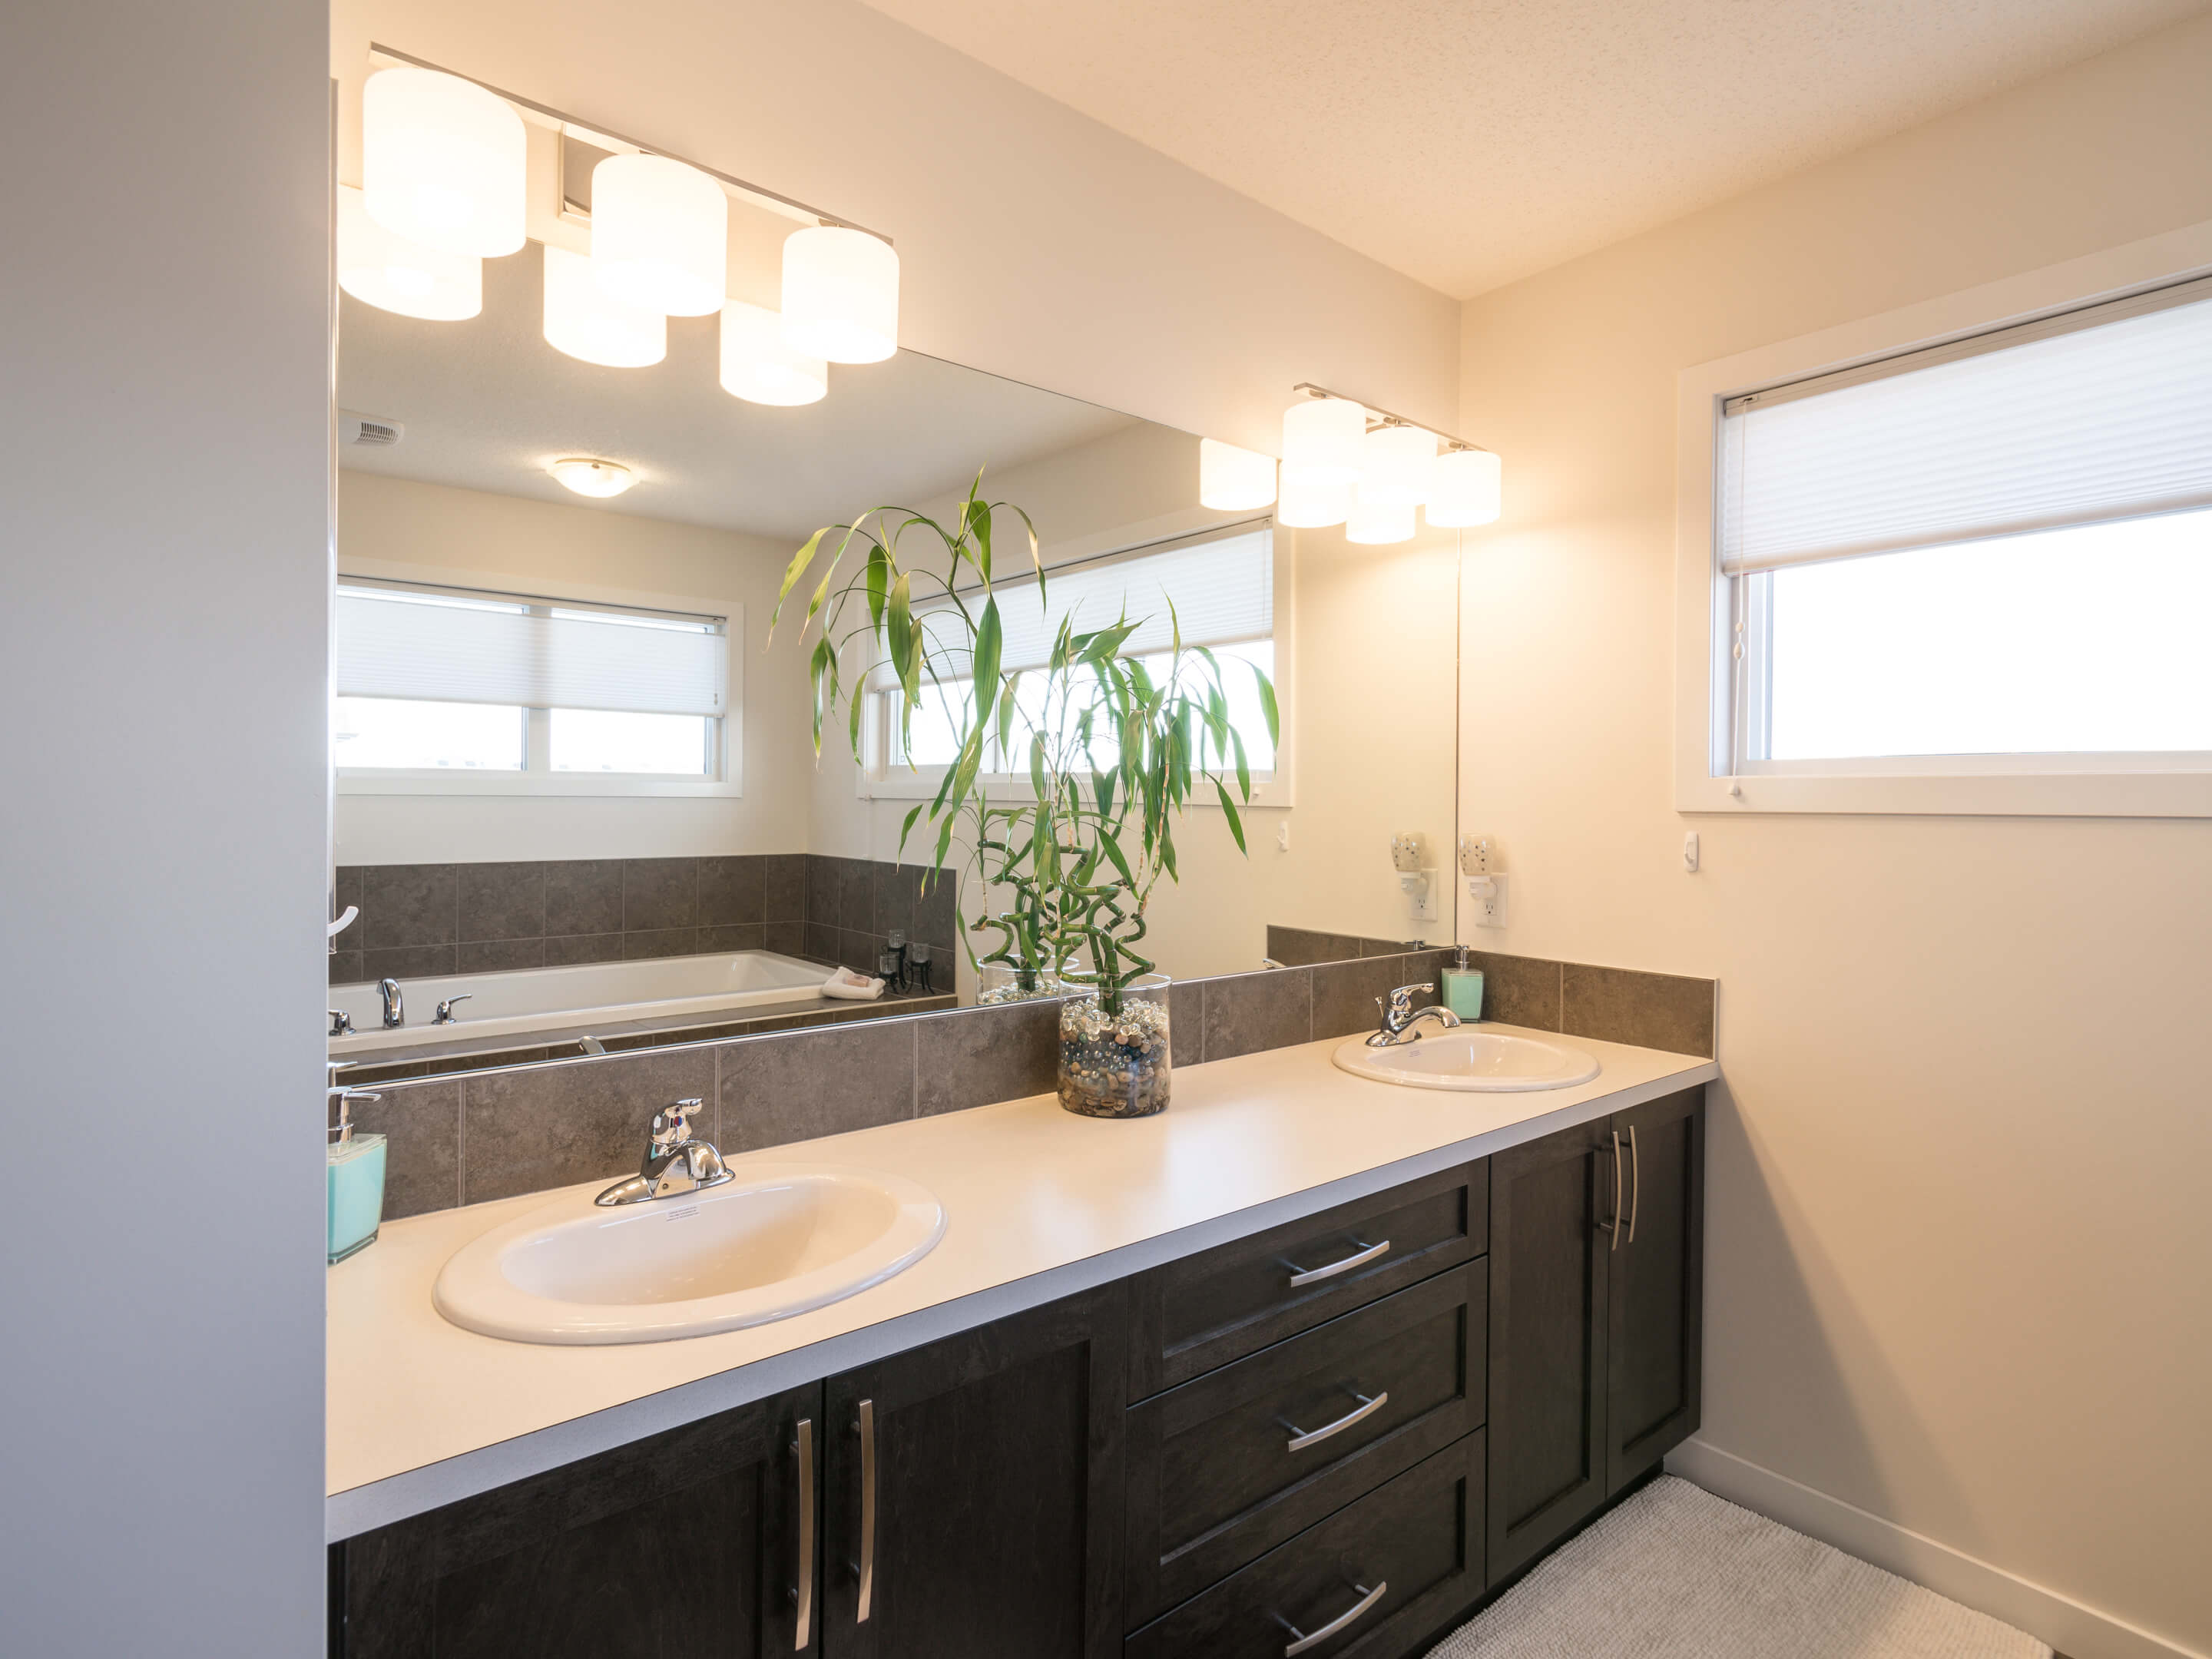 Hello Gorgeous - 213 Hillcrest Drive Airdrie - Tara Molina Real Estate (17 of 31)